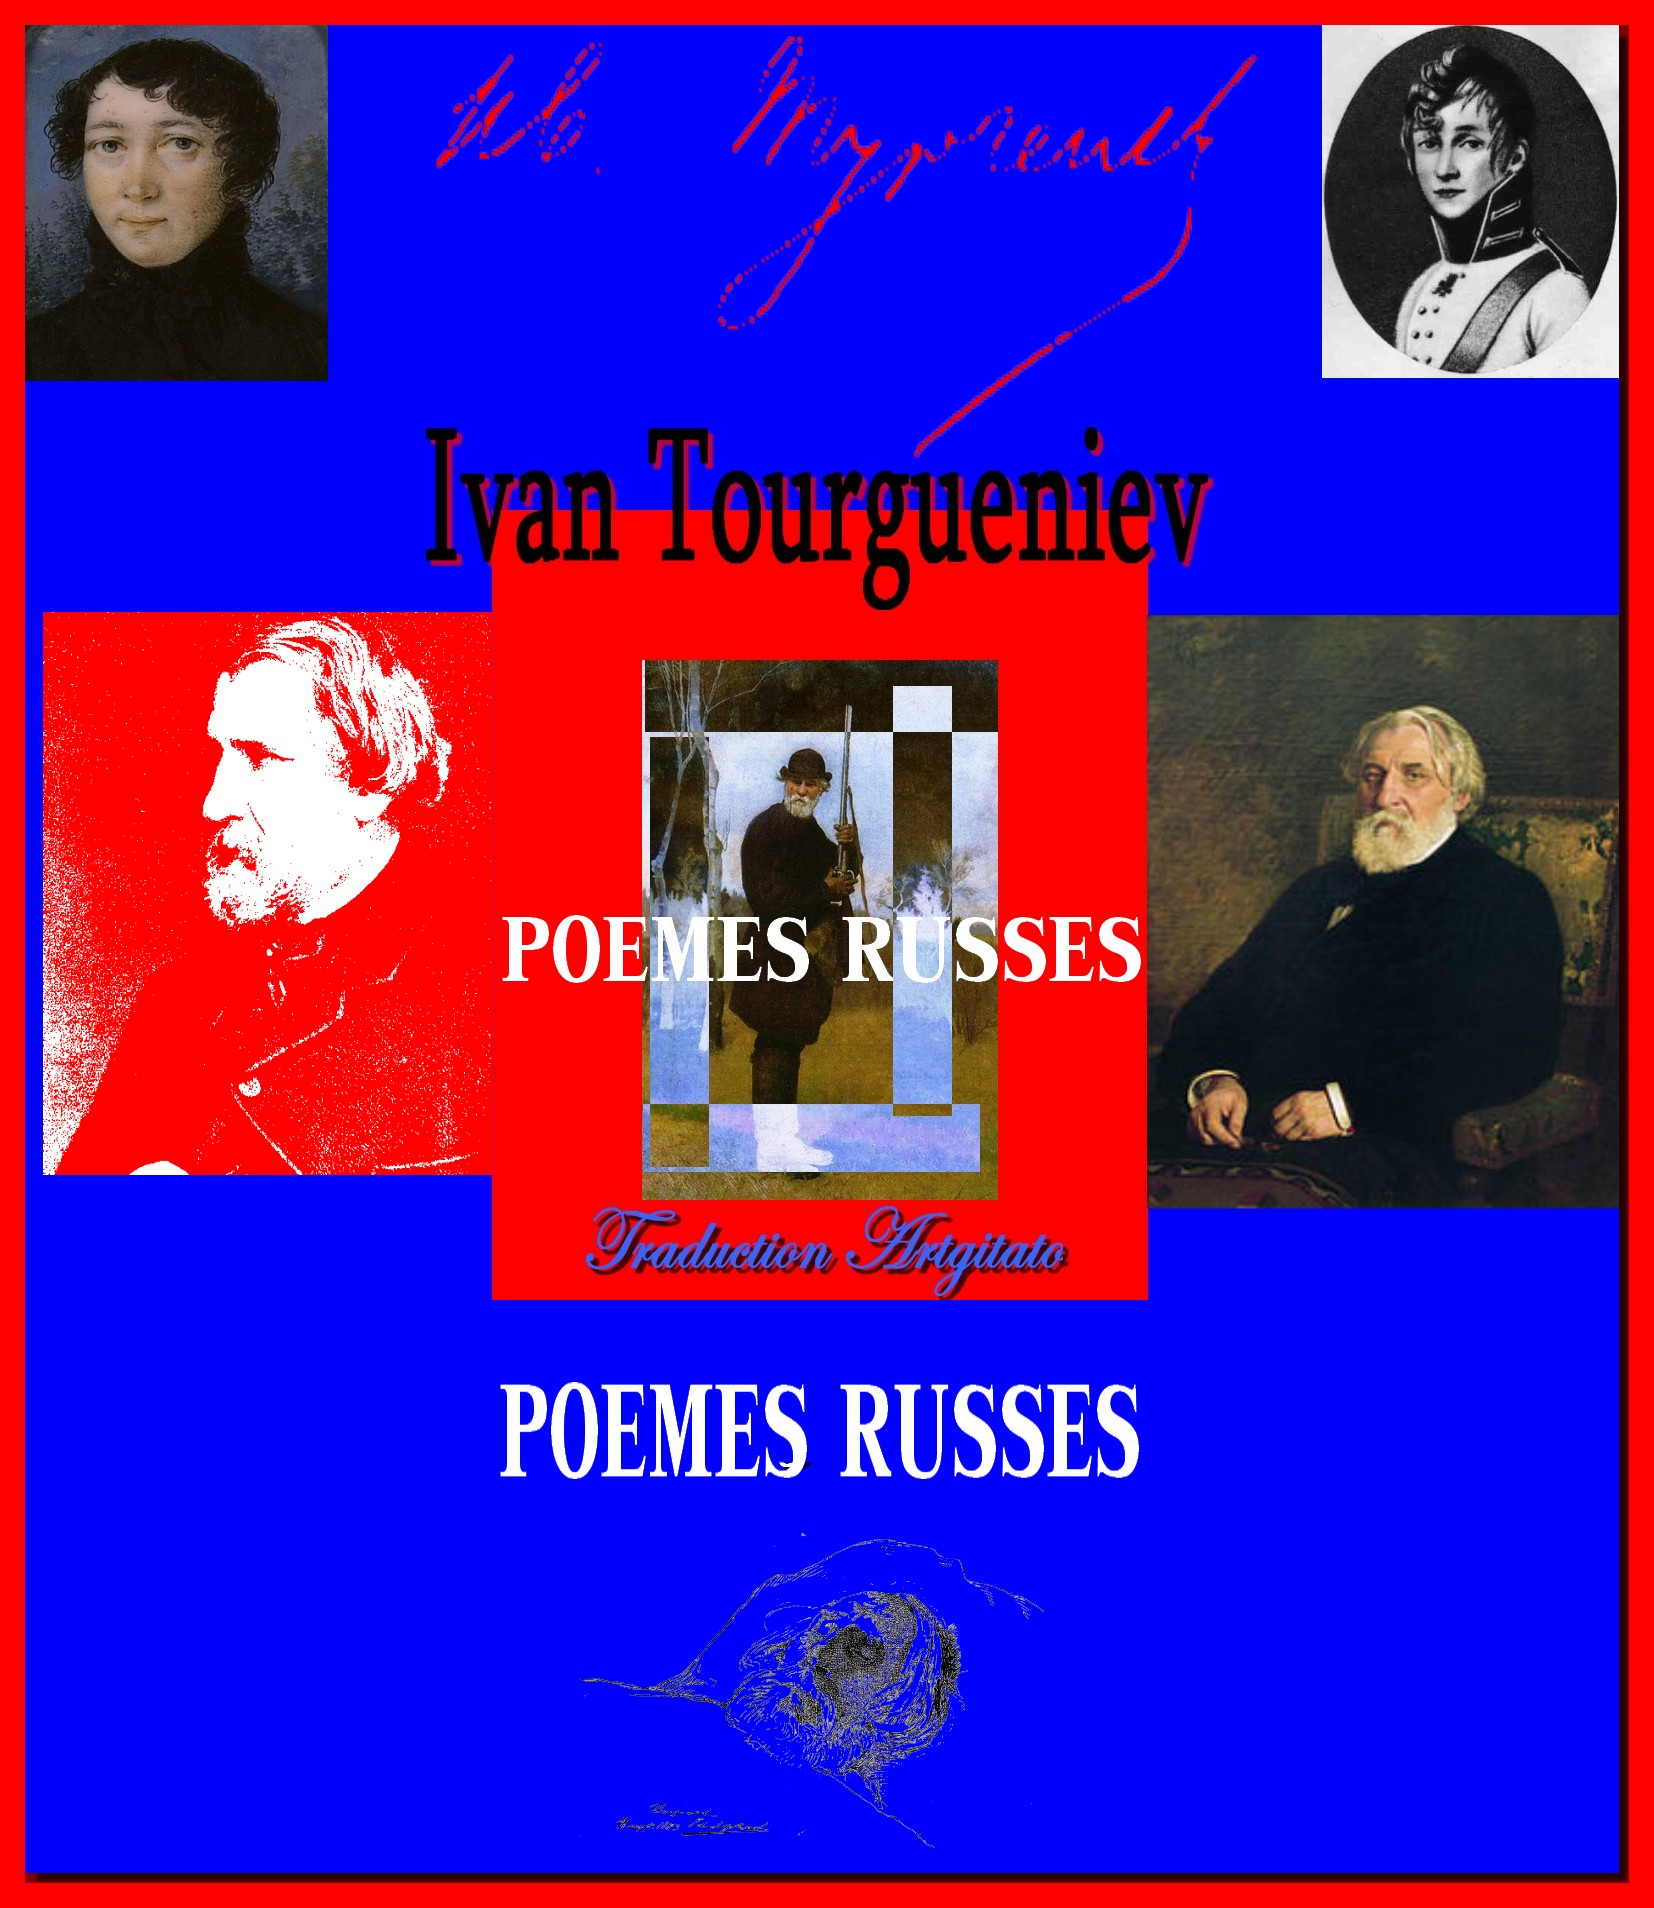 Poemes en prose de Tourgueniev Texte et Traduction Artgitato